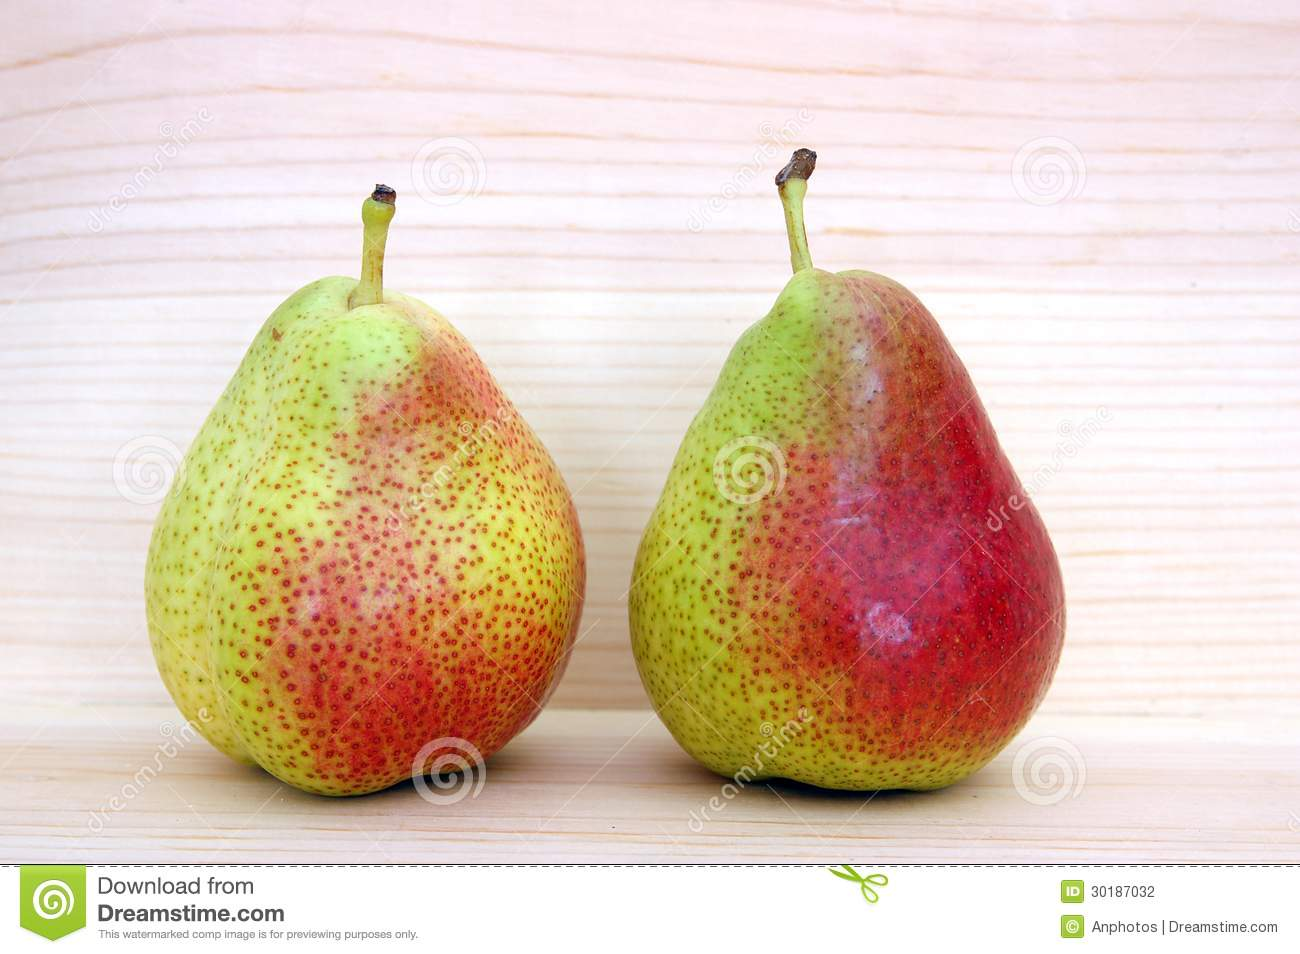 how to tell when bosc pears are ripe